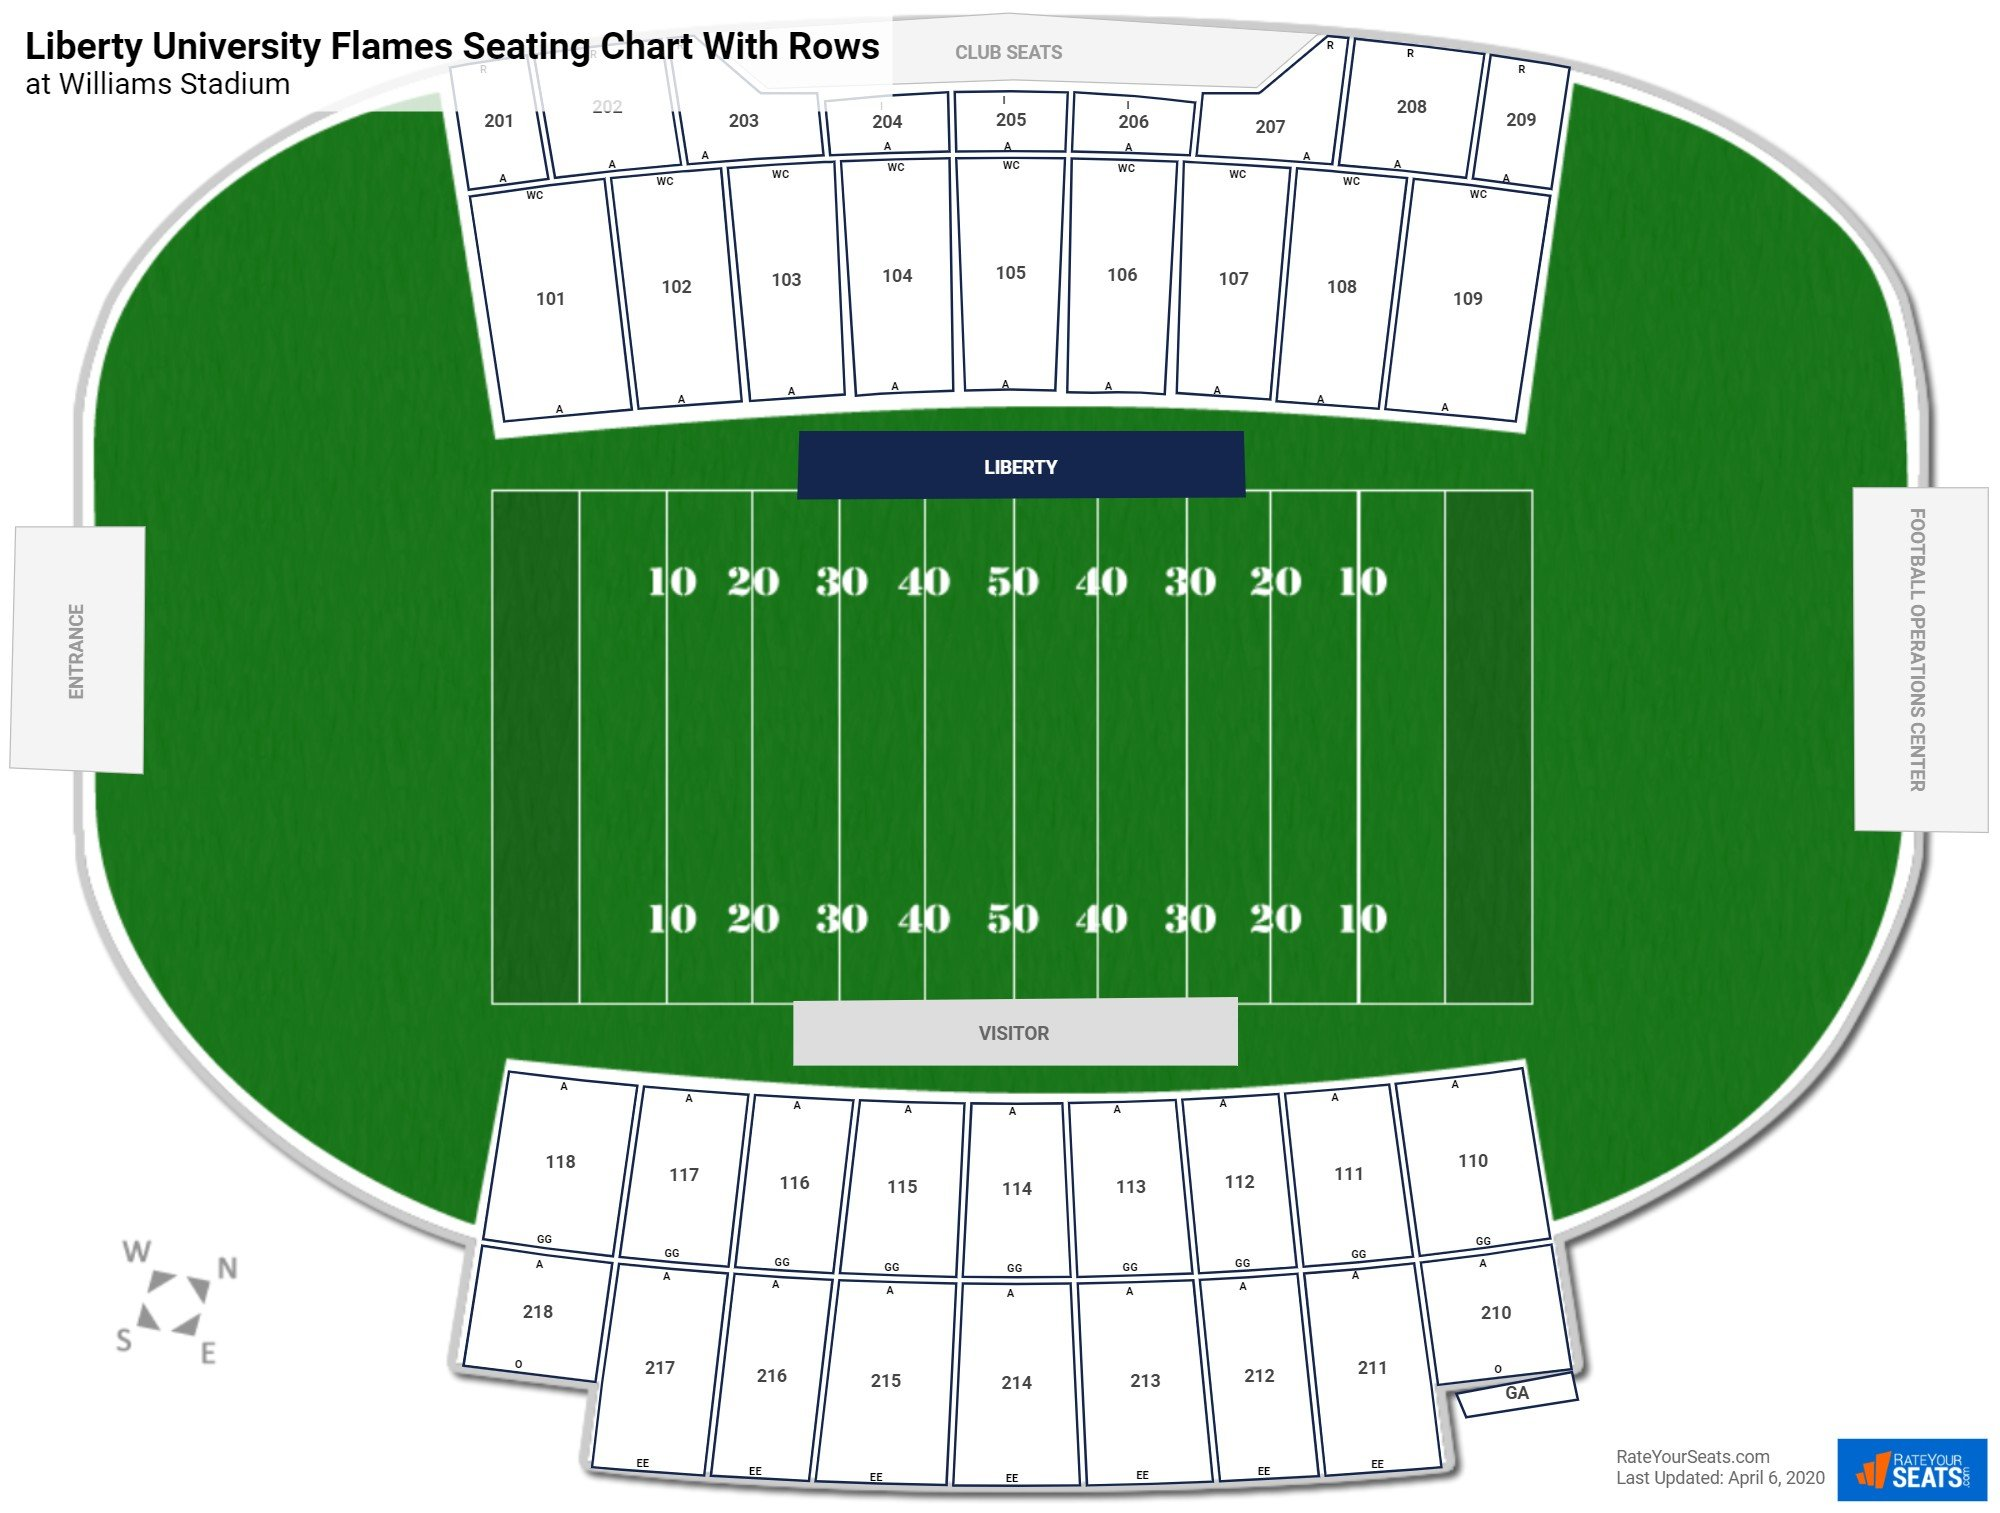 Williams Stadium seating chart with rows